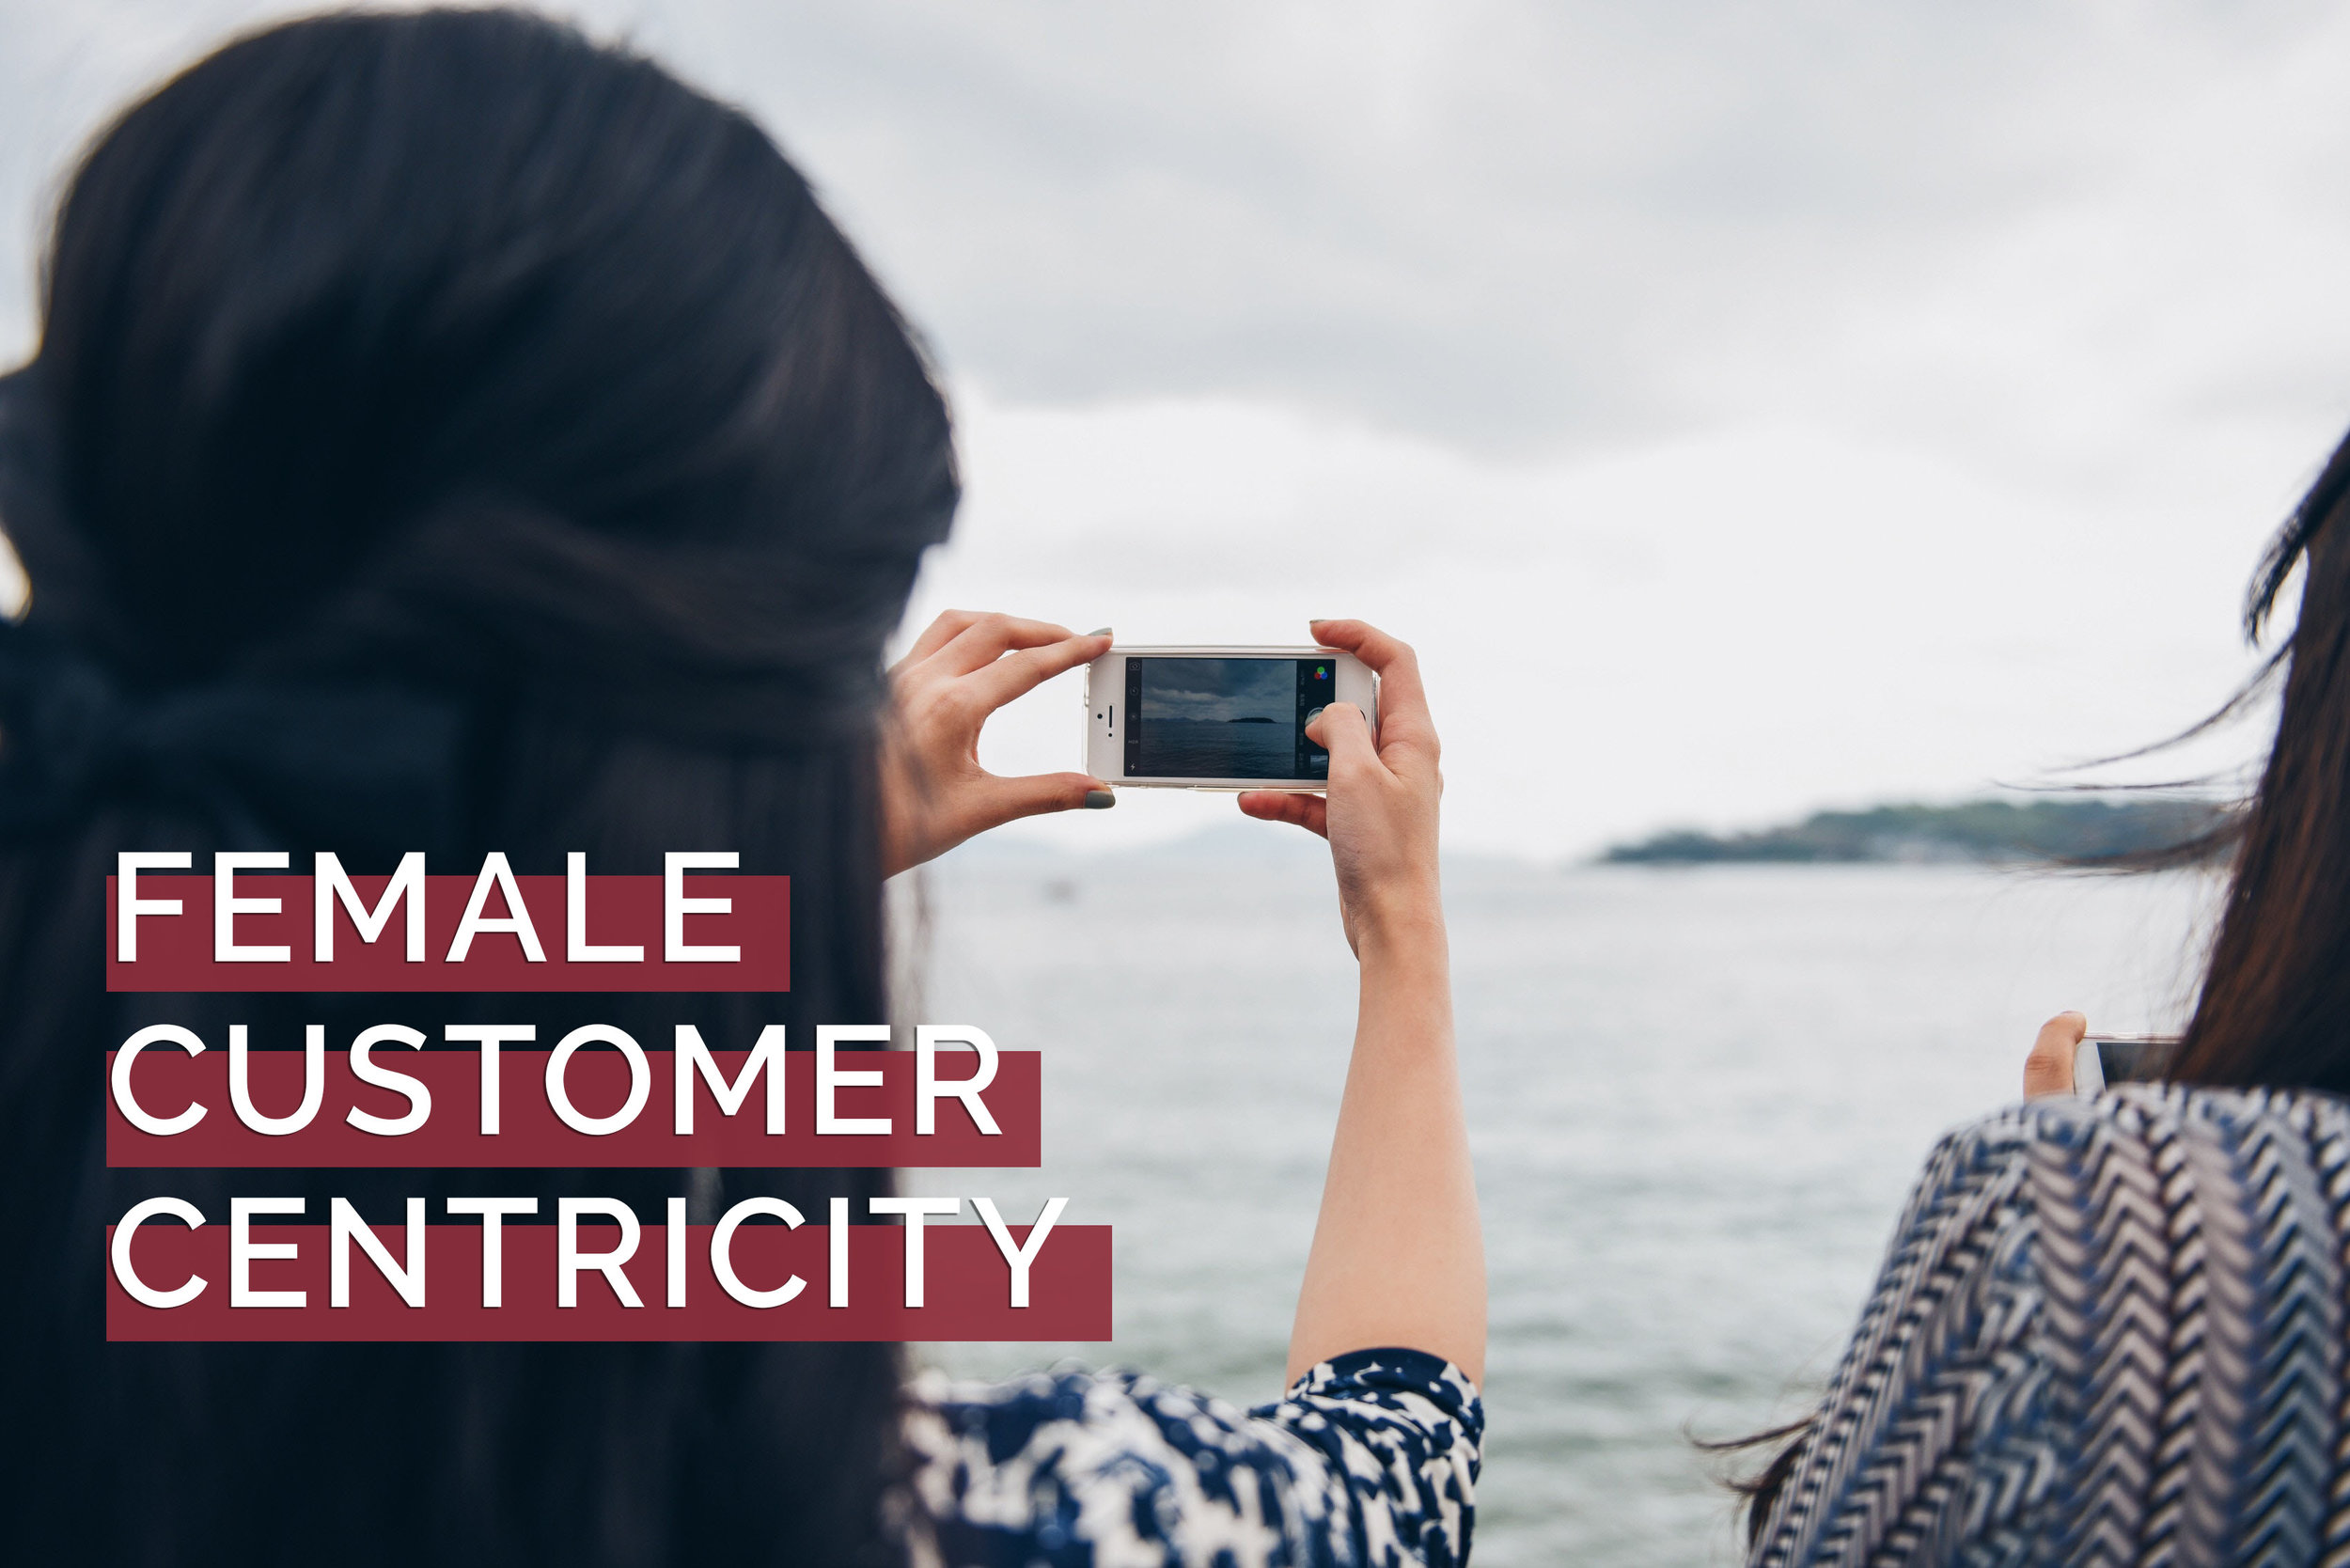 Step 1. - Customer - Female-customer-centricity. Pioneered and lead by Liesbeth. Year 2001. IKEA Country & Global.Create insights, strategies and actions for a new female customer experience. From products to customer journeys, from service design to branding.